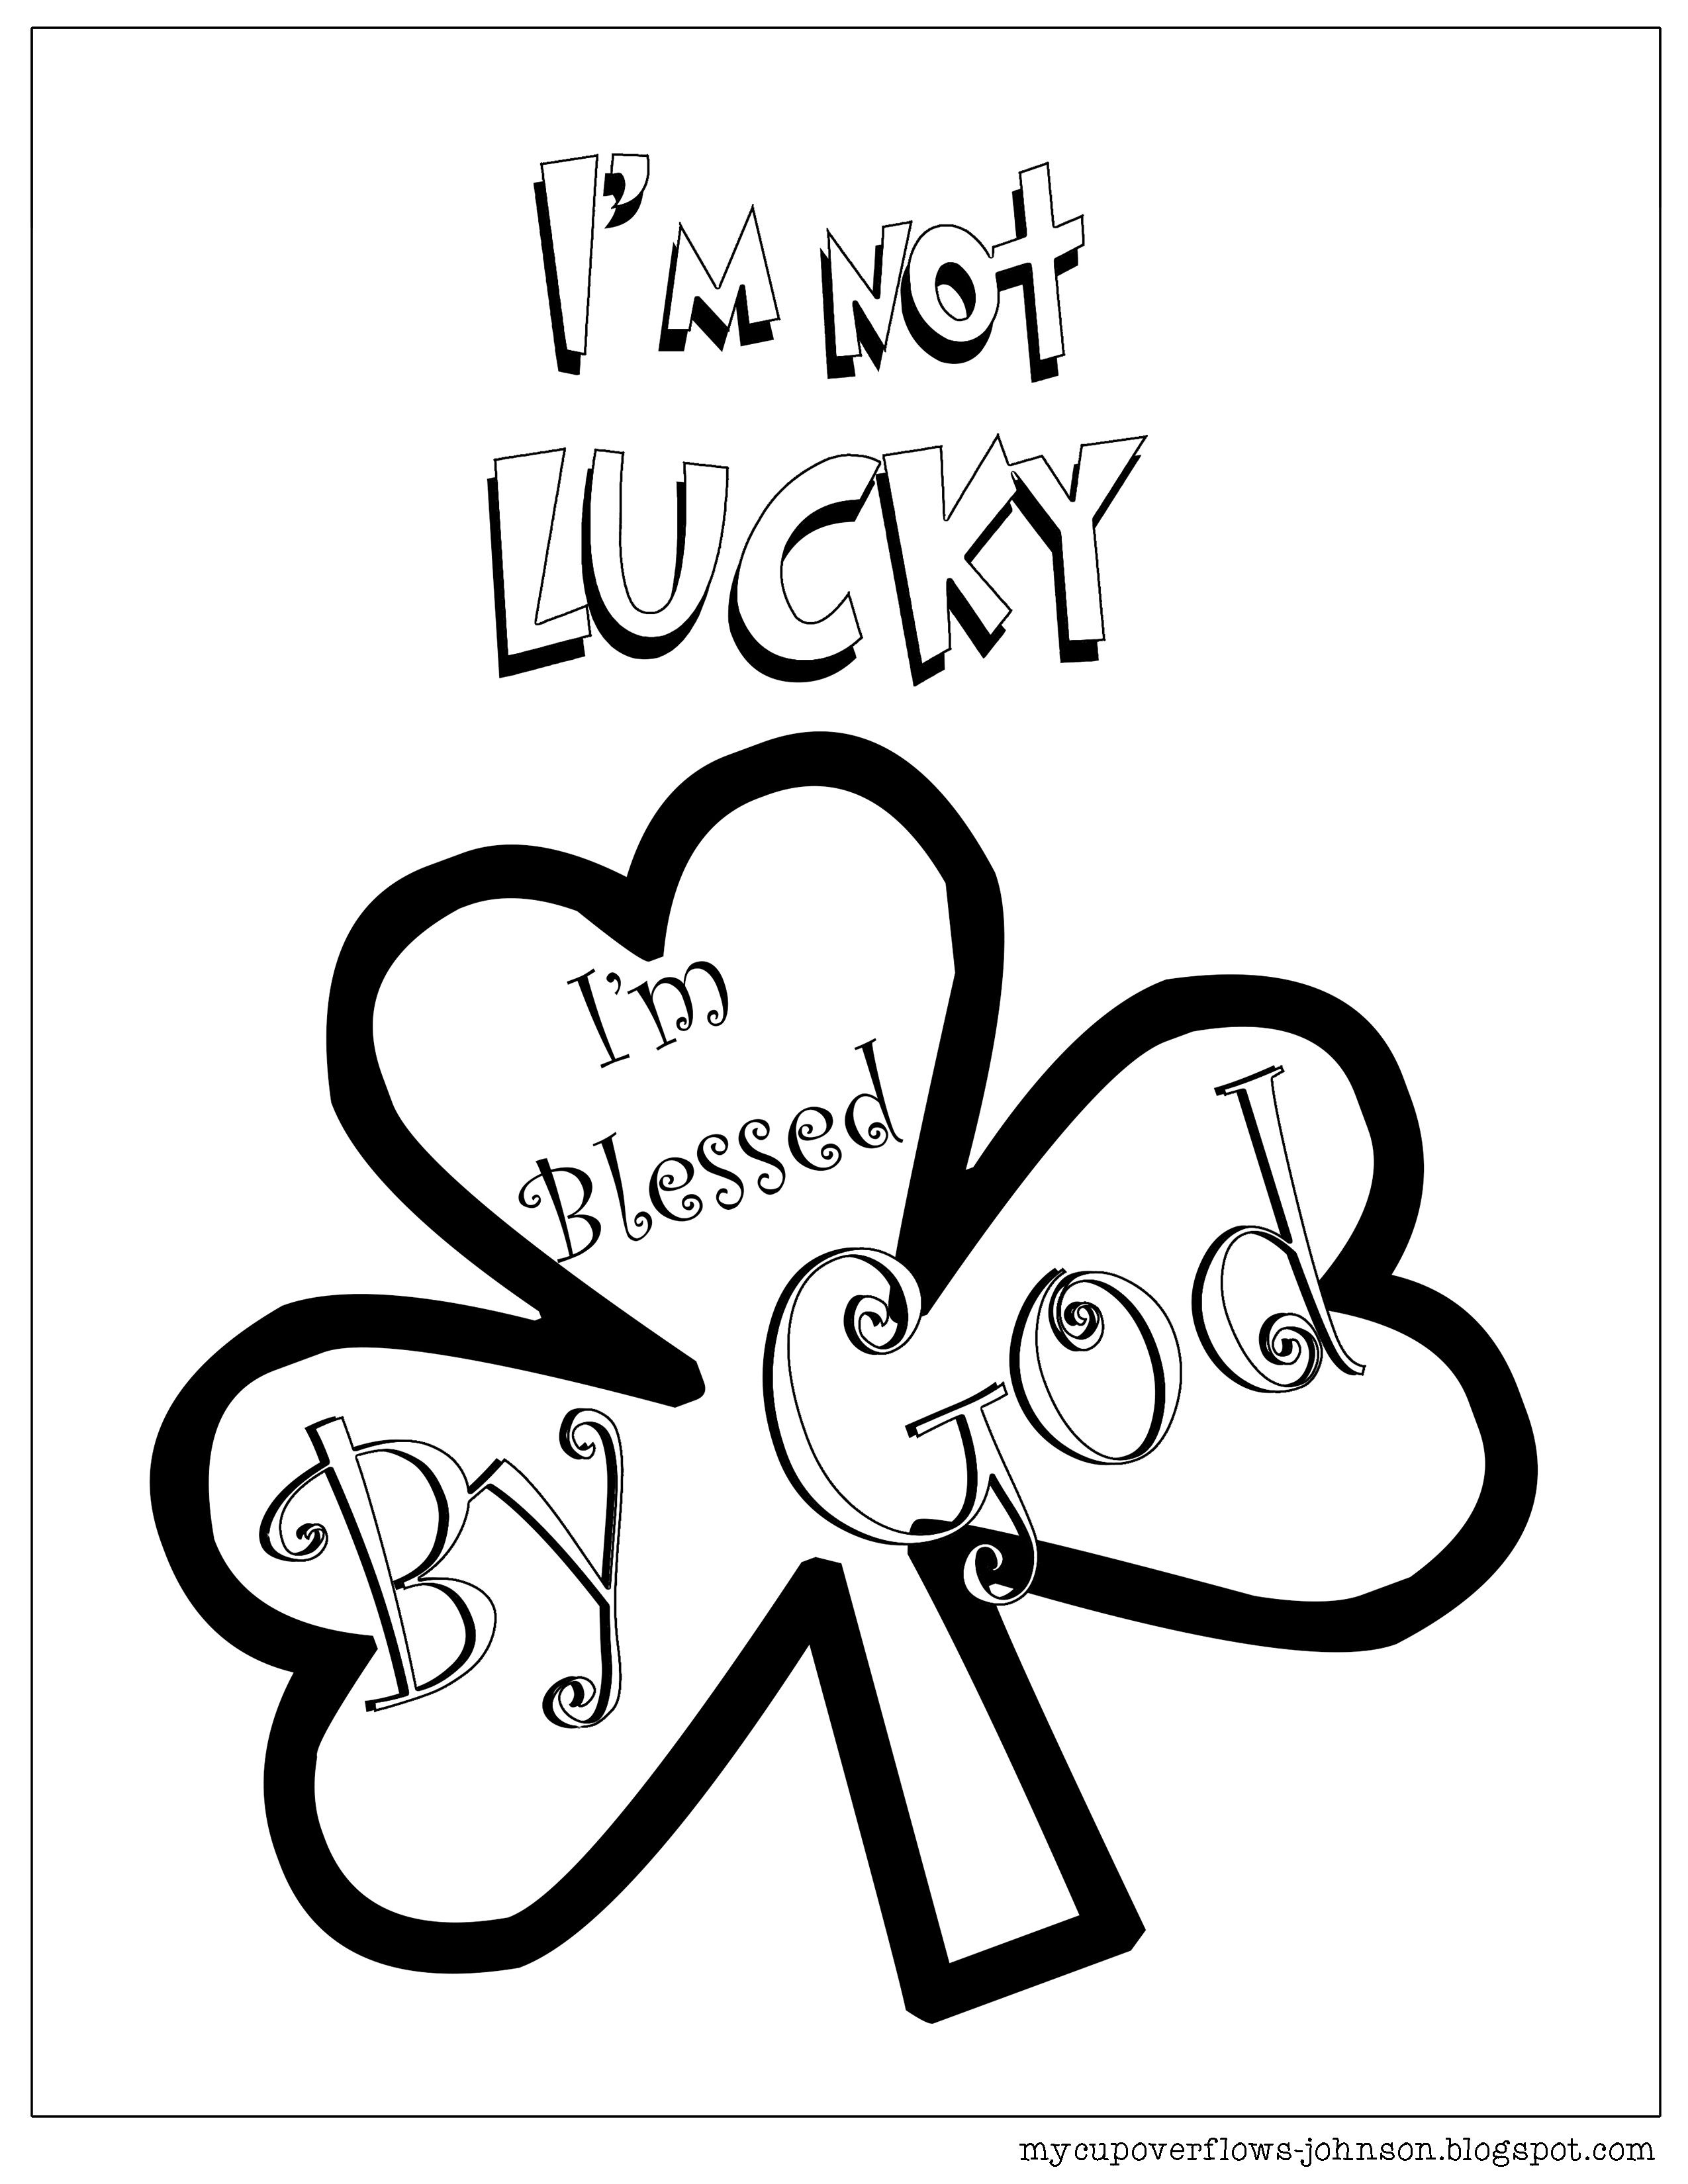 St Patrick S Day Coloring Pages Coloring Pages St Patricks Coloring Sheets Easter Coloring Pages [ 3300 x 2550 Pixel ]